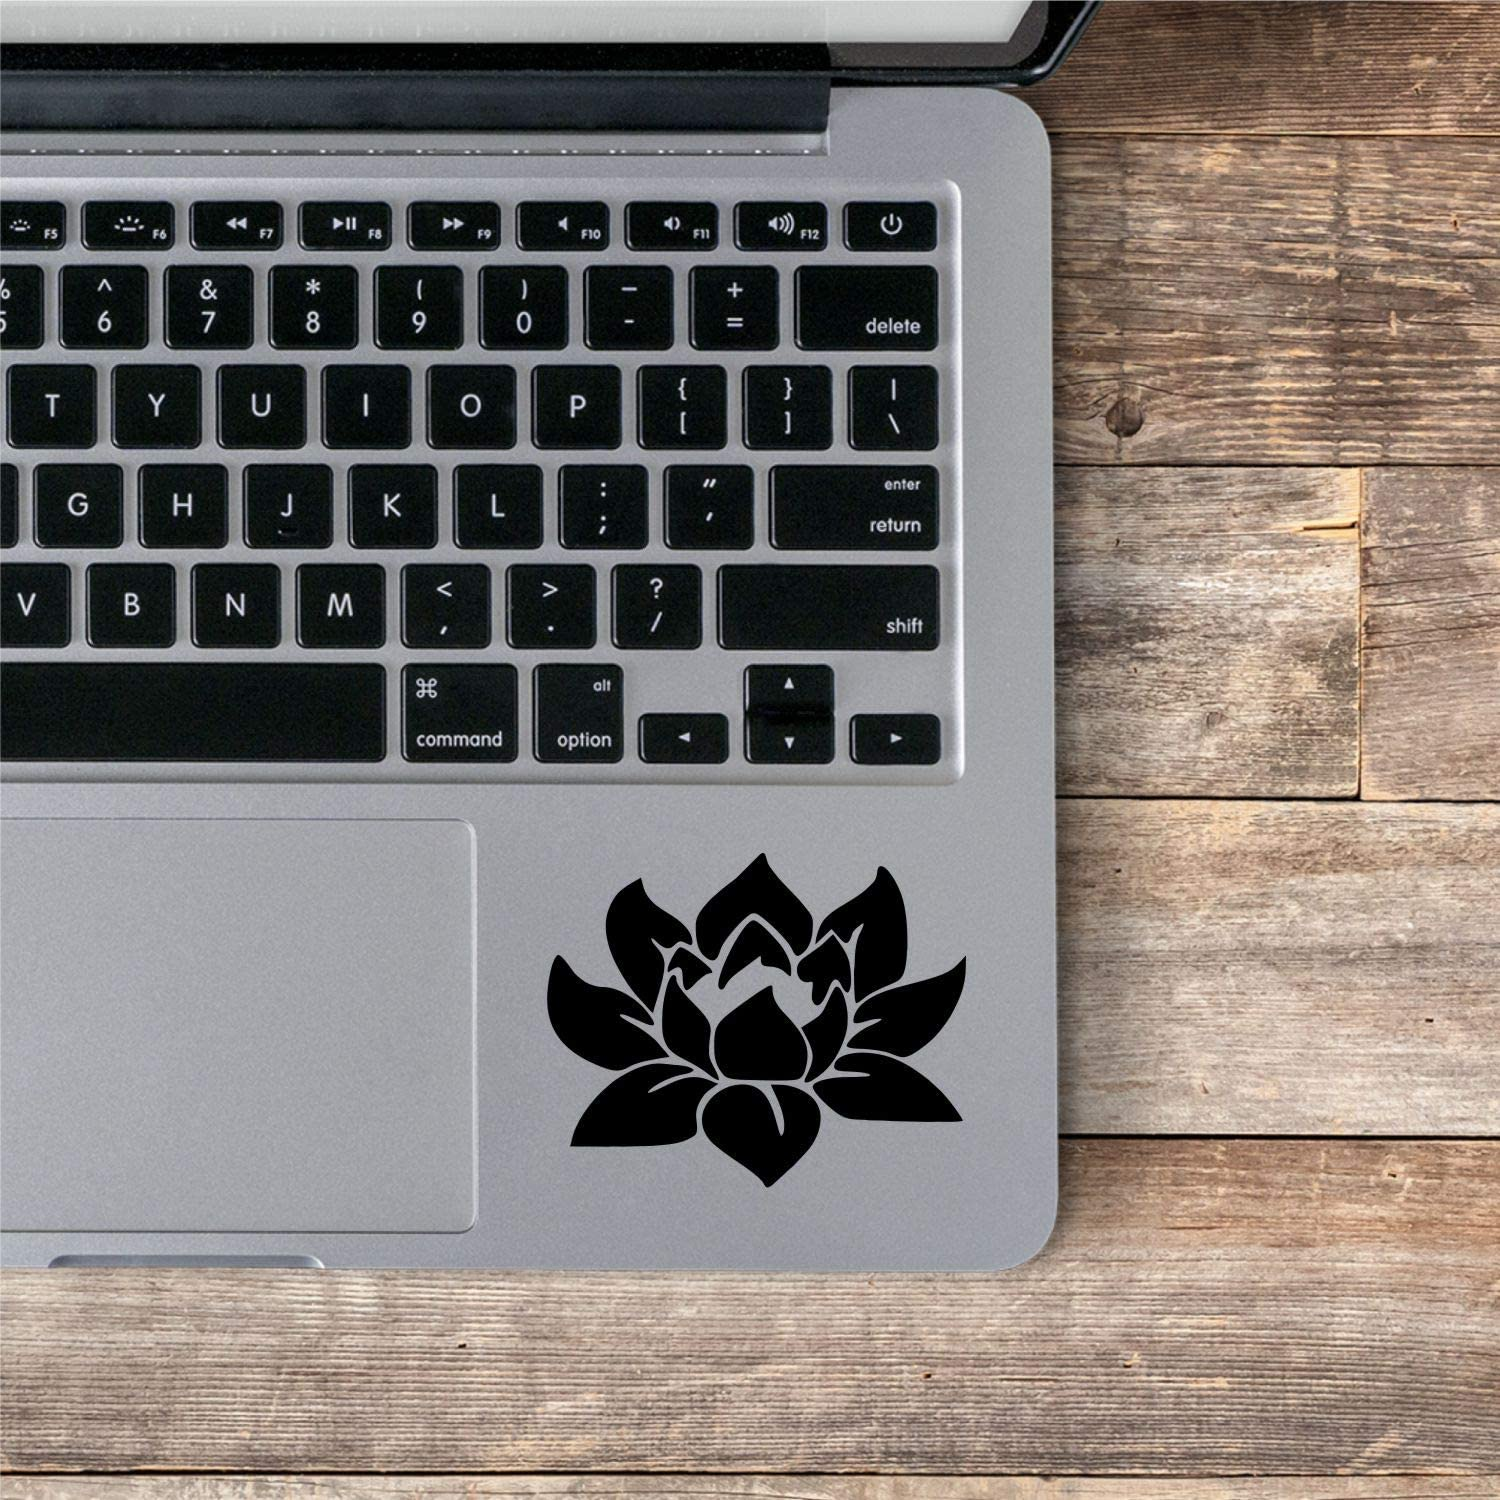 Sunset Graphics & Decals Lotus Flower Vinyl Decal for Laptop Phone Trackpad Keyboard Computer Tumbler Floral   Black   2.5 inches   SGD000129B